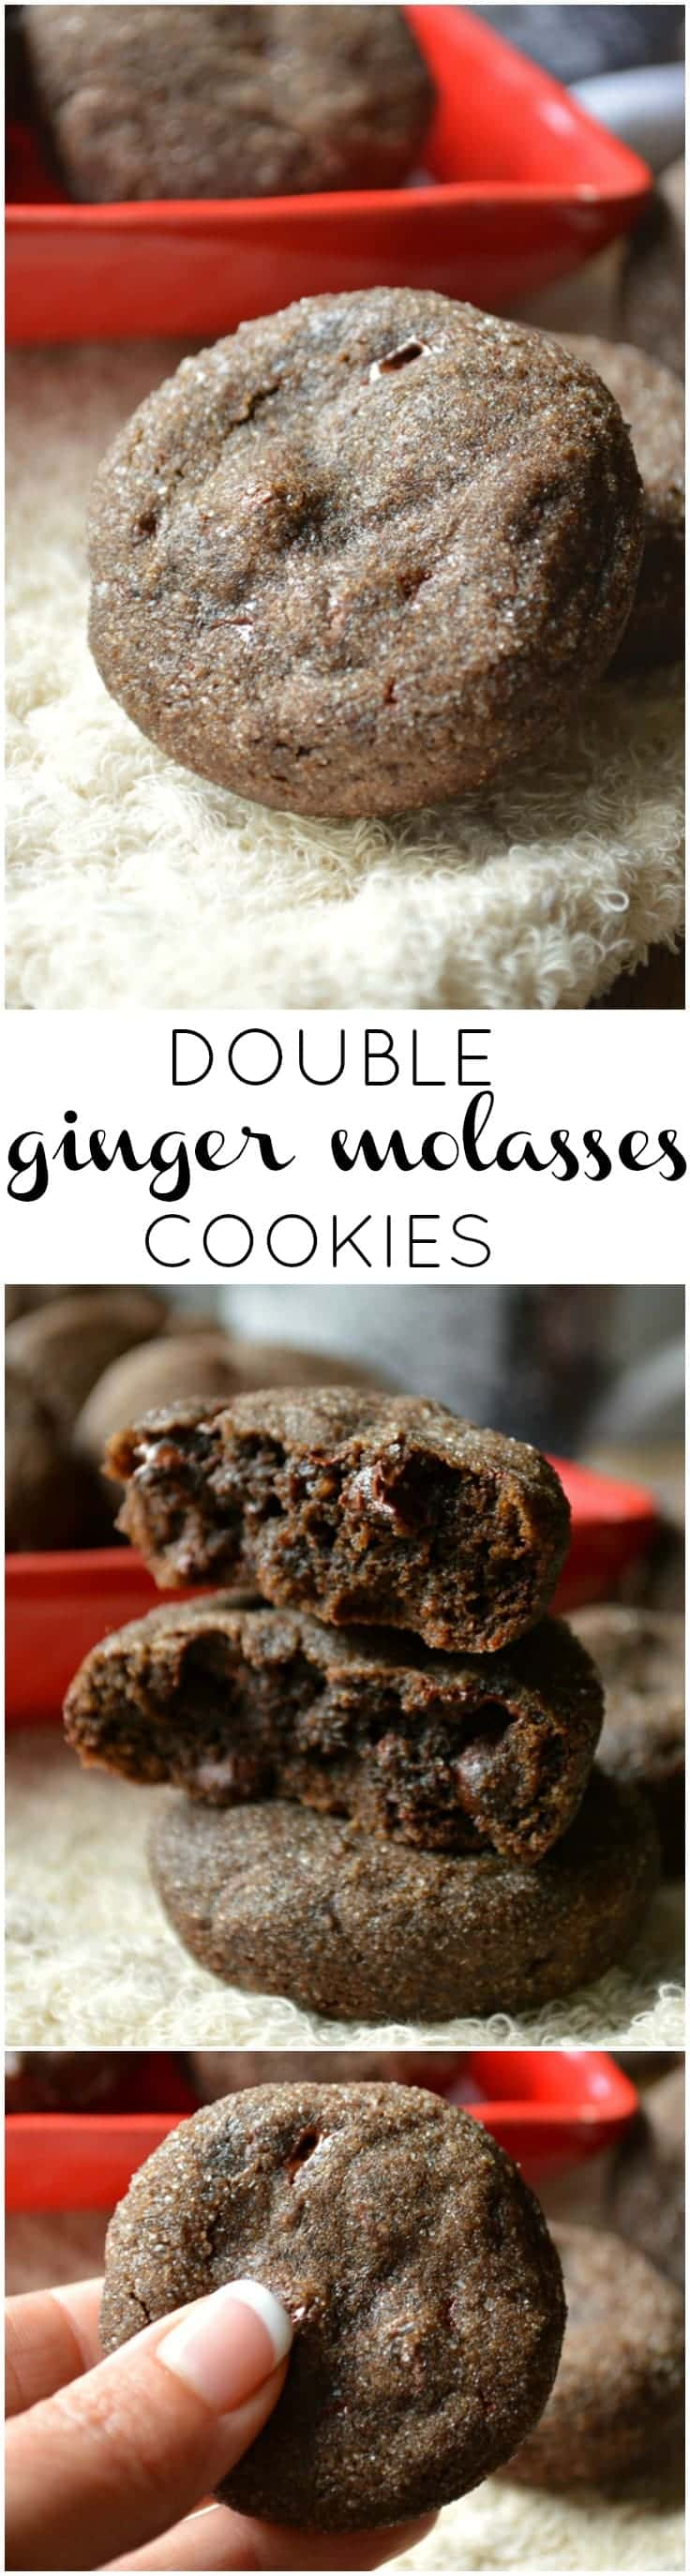 Double Ginger Molasses Cookies are soft and chewy, also studded with chocolate, rolled in sugar, and are ready to celebrate.